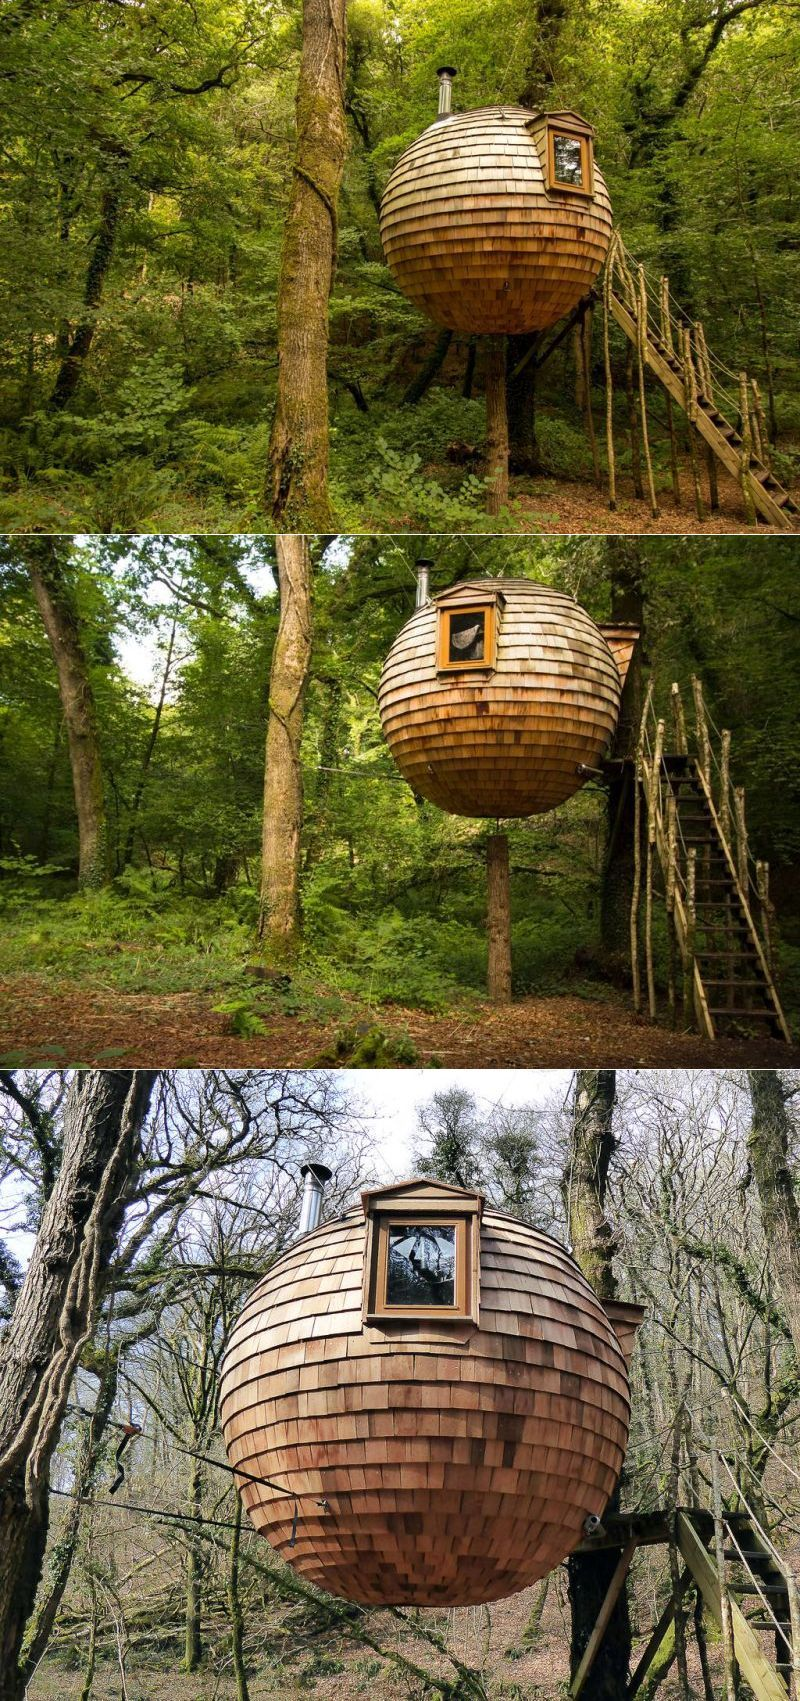 The cedar-clad treehouse pod in Cornwall, United Kingdom is one of the most unique treehouses to look out for across the world. This ball-shaped vacation cabin, named the Lost Meadow Treepod is designed to leave minimum impact on the trees while holding up the overall weight.  #treehouse #treehousehotel #treehouseresort #getaway